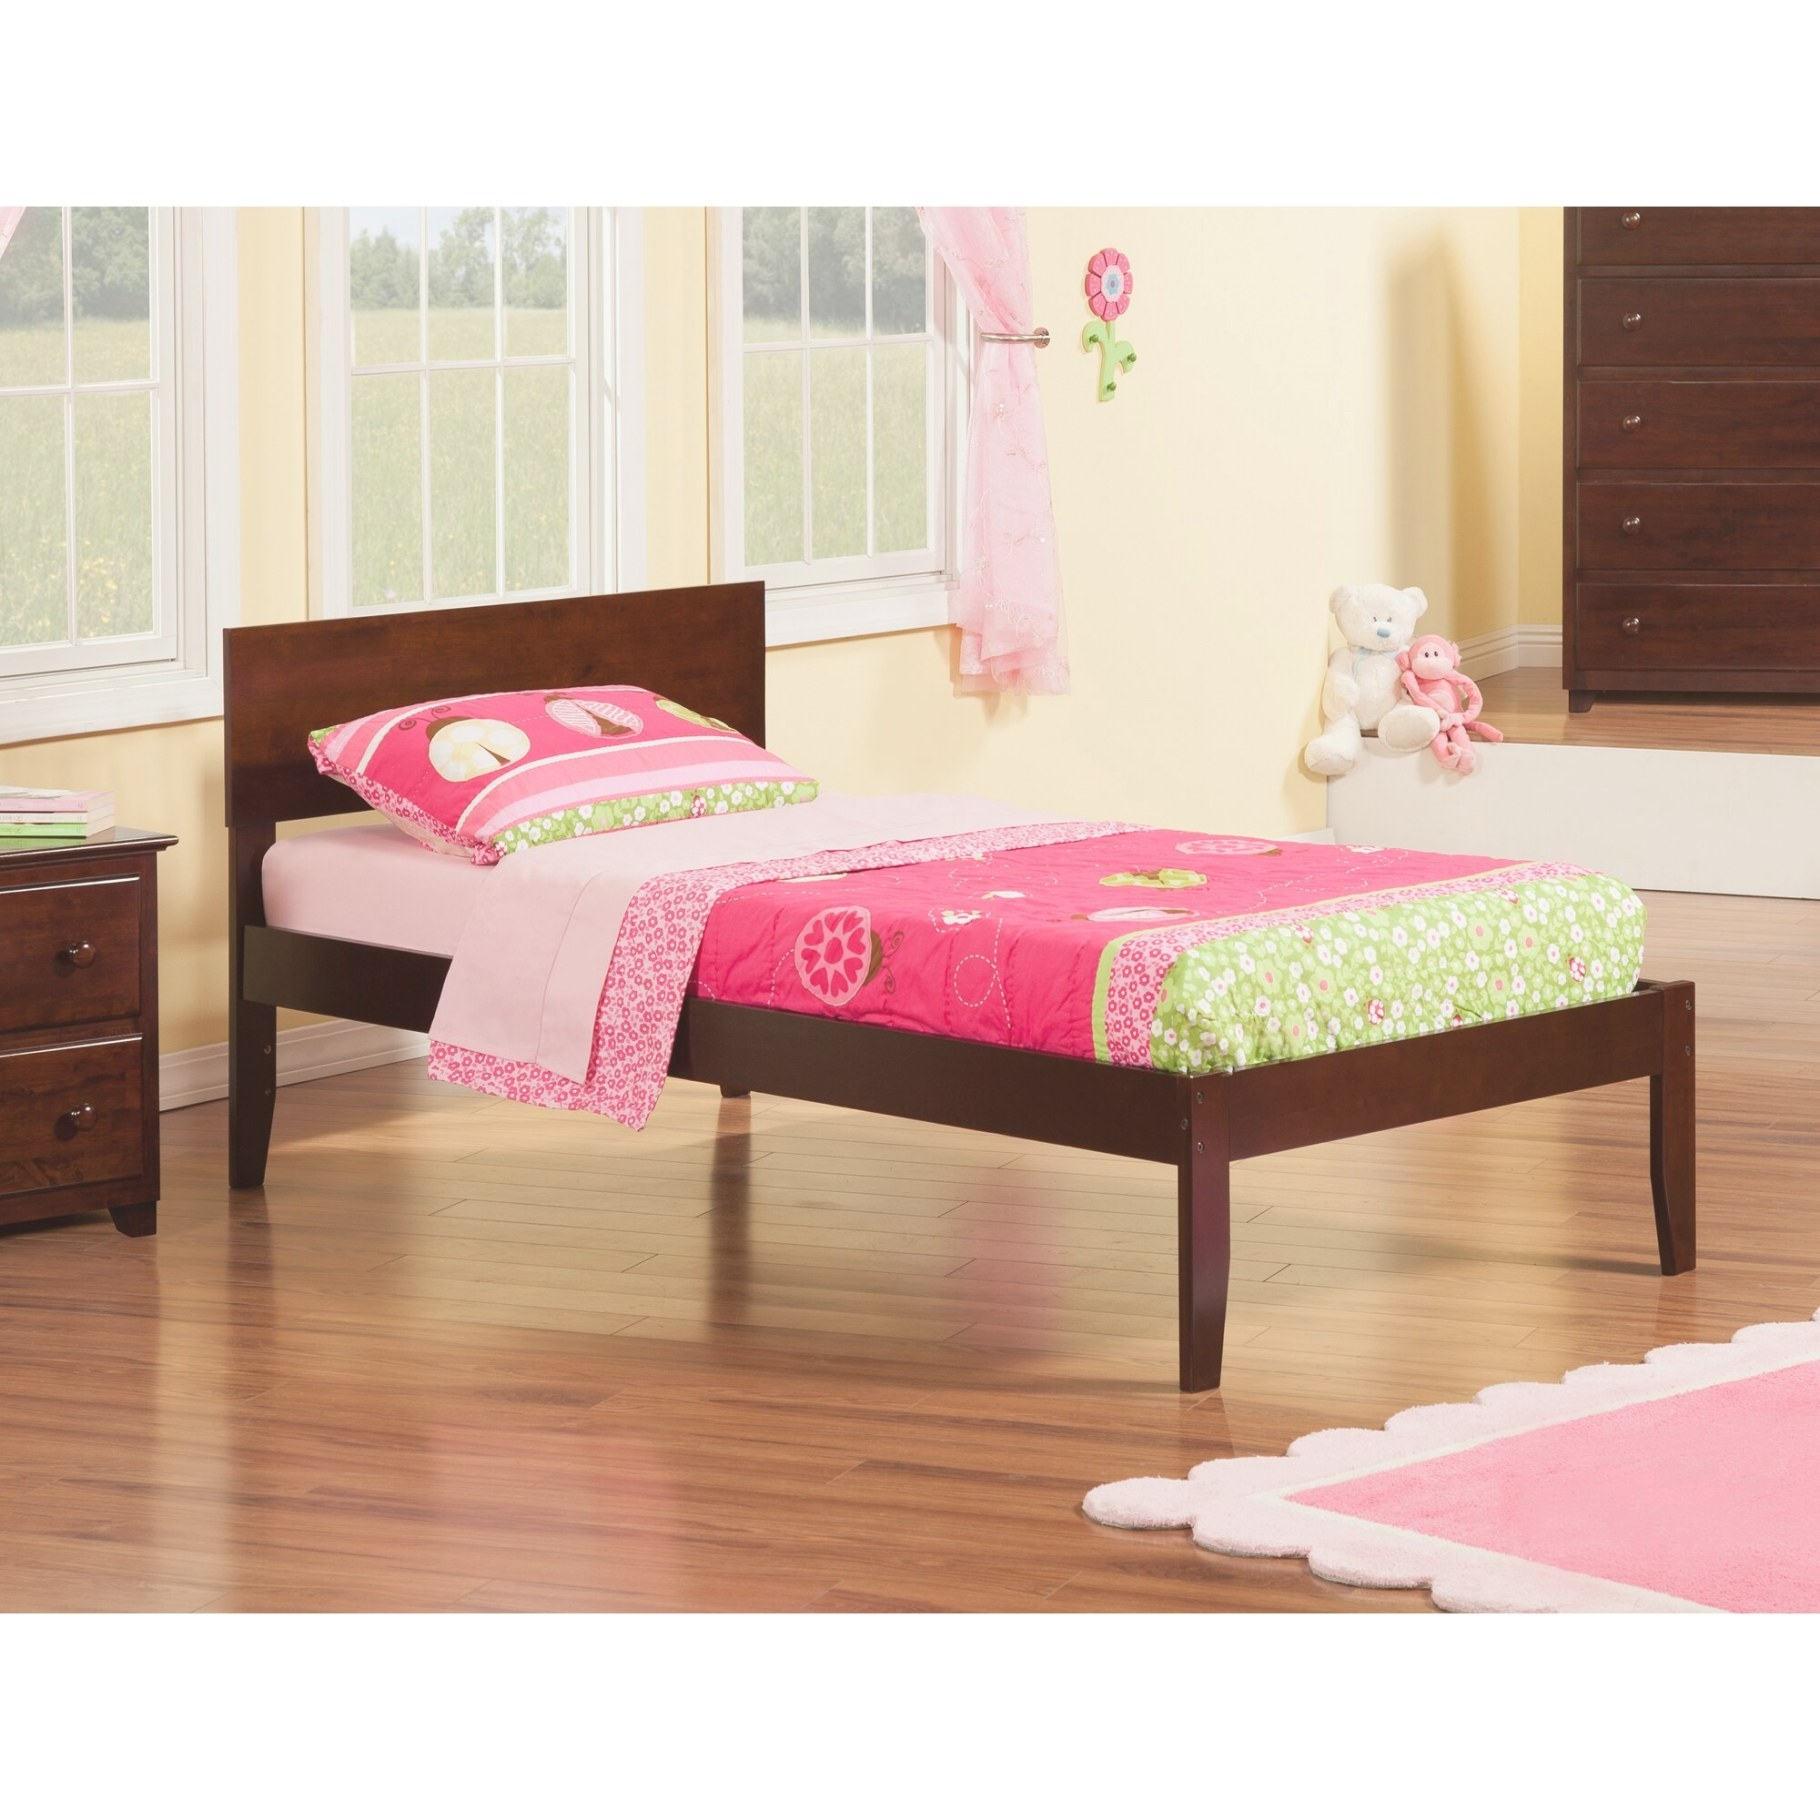 Atlantic Furniture Orlando Extra Long Twin Panel Bed pertaining to Extra Long Twin Bed